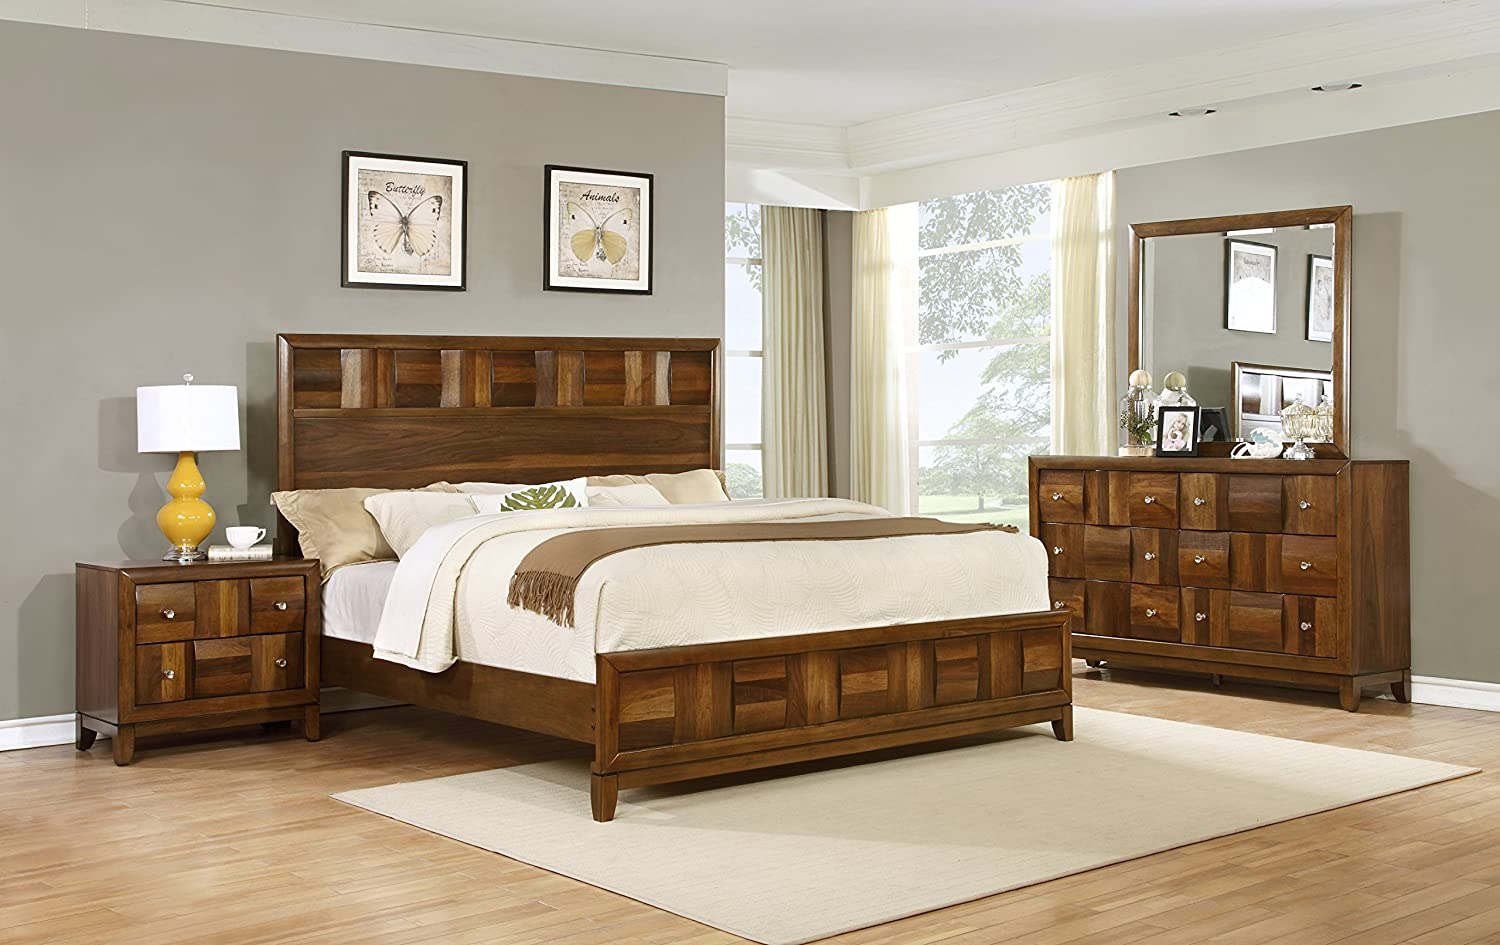 Exceptionnel Amazon.com: Roundhill Furniture Calais Solid Wood Construction Bedroom Set  With Bed, Dresser, Mirror, Night Stand, Queen, Walnut: Kitchen U0026 Dining